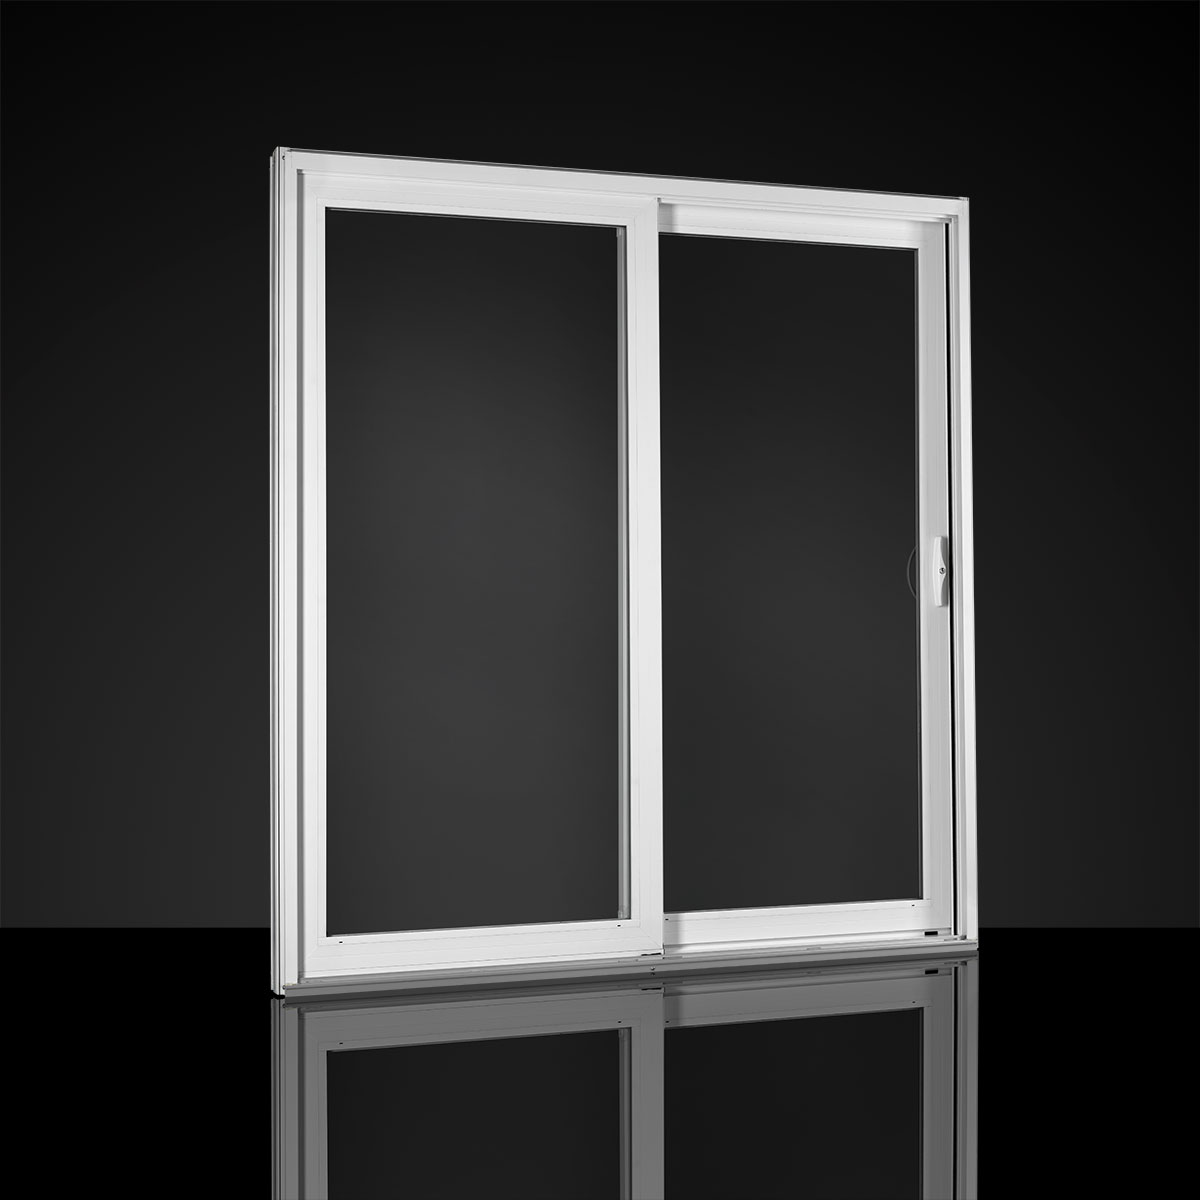 Kawneer Interior Sliding Doors